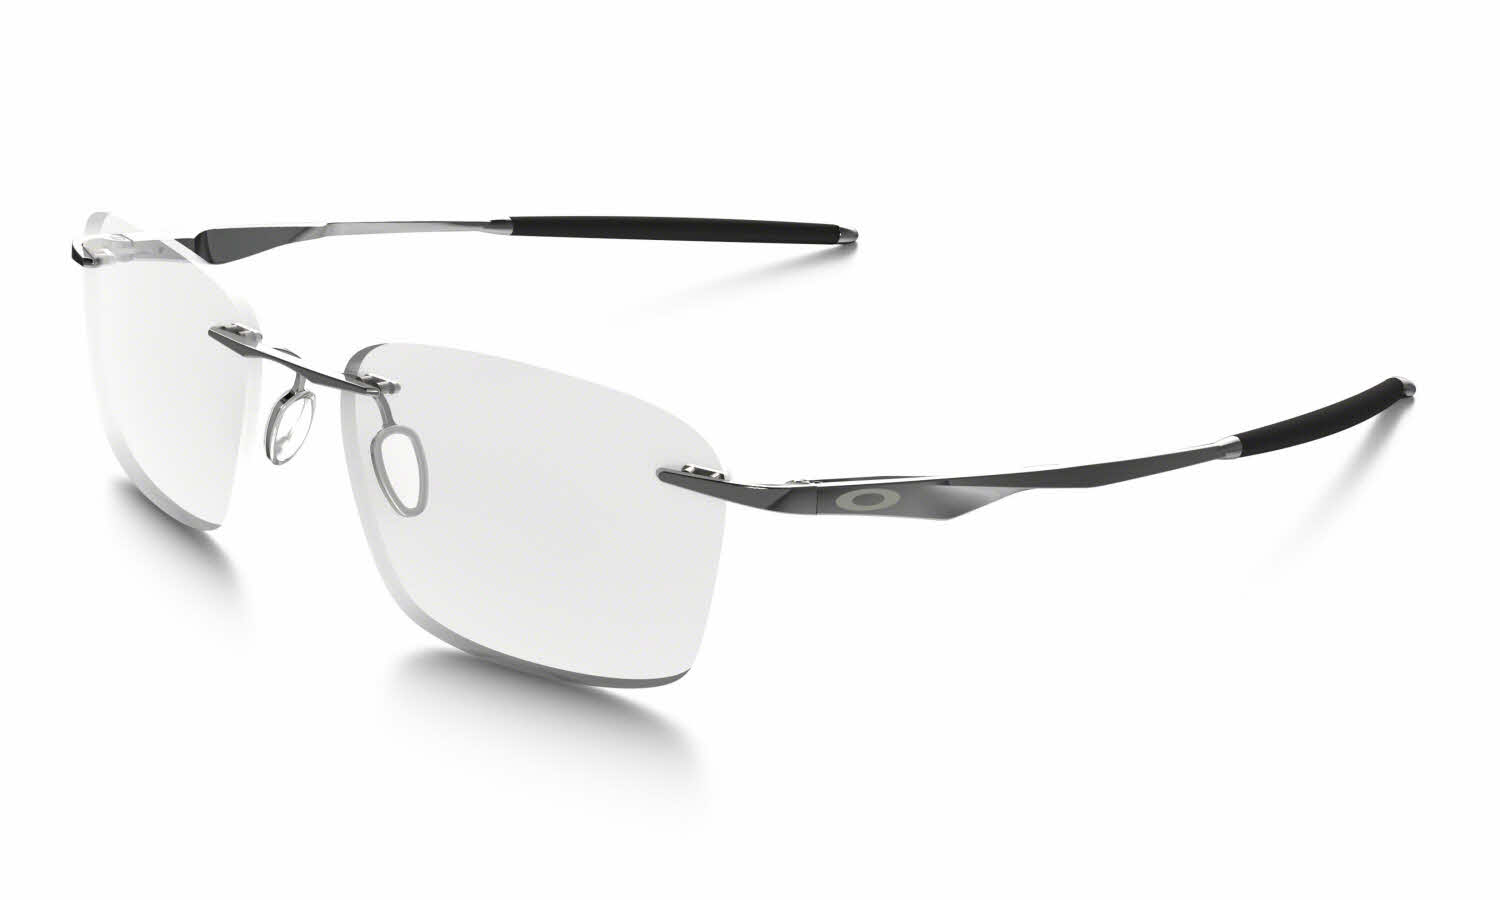 Big Frame Oakley Glasses : Oakley Wingfold EVS Eyeglasses Free Shipping